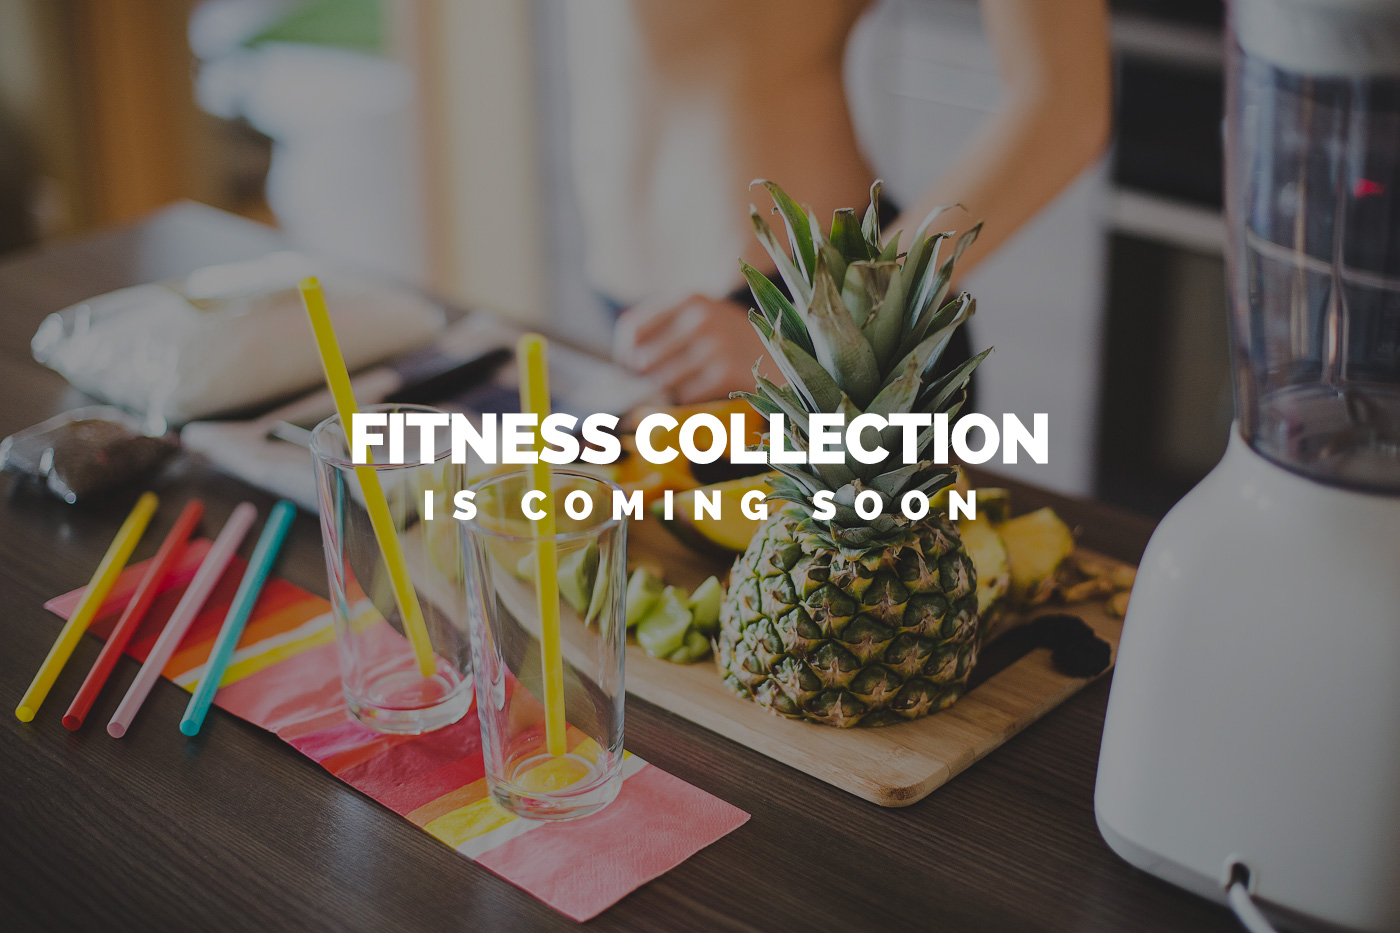 picjumbo-fitness-collection-coming-soon